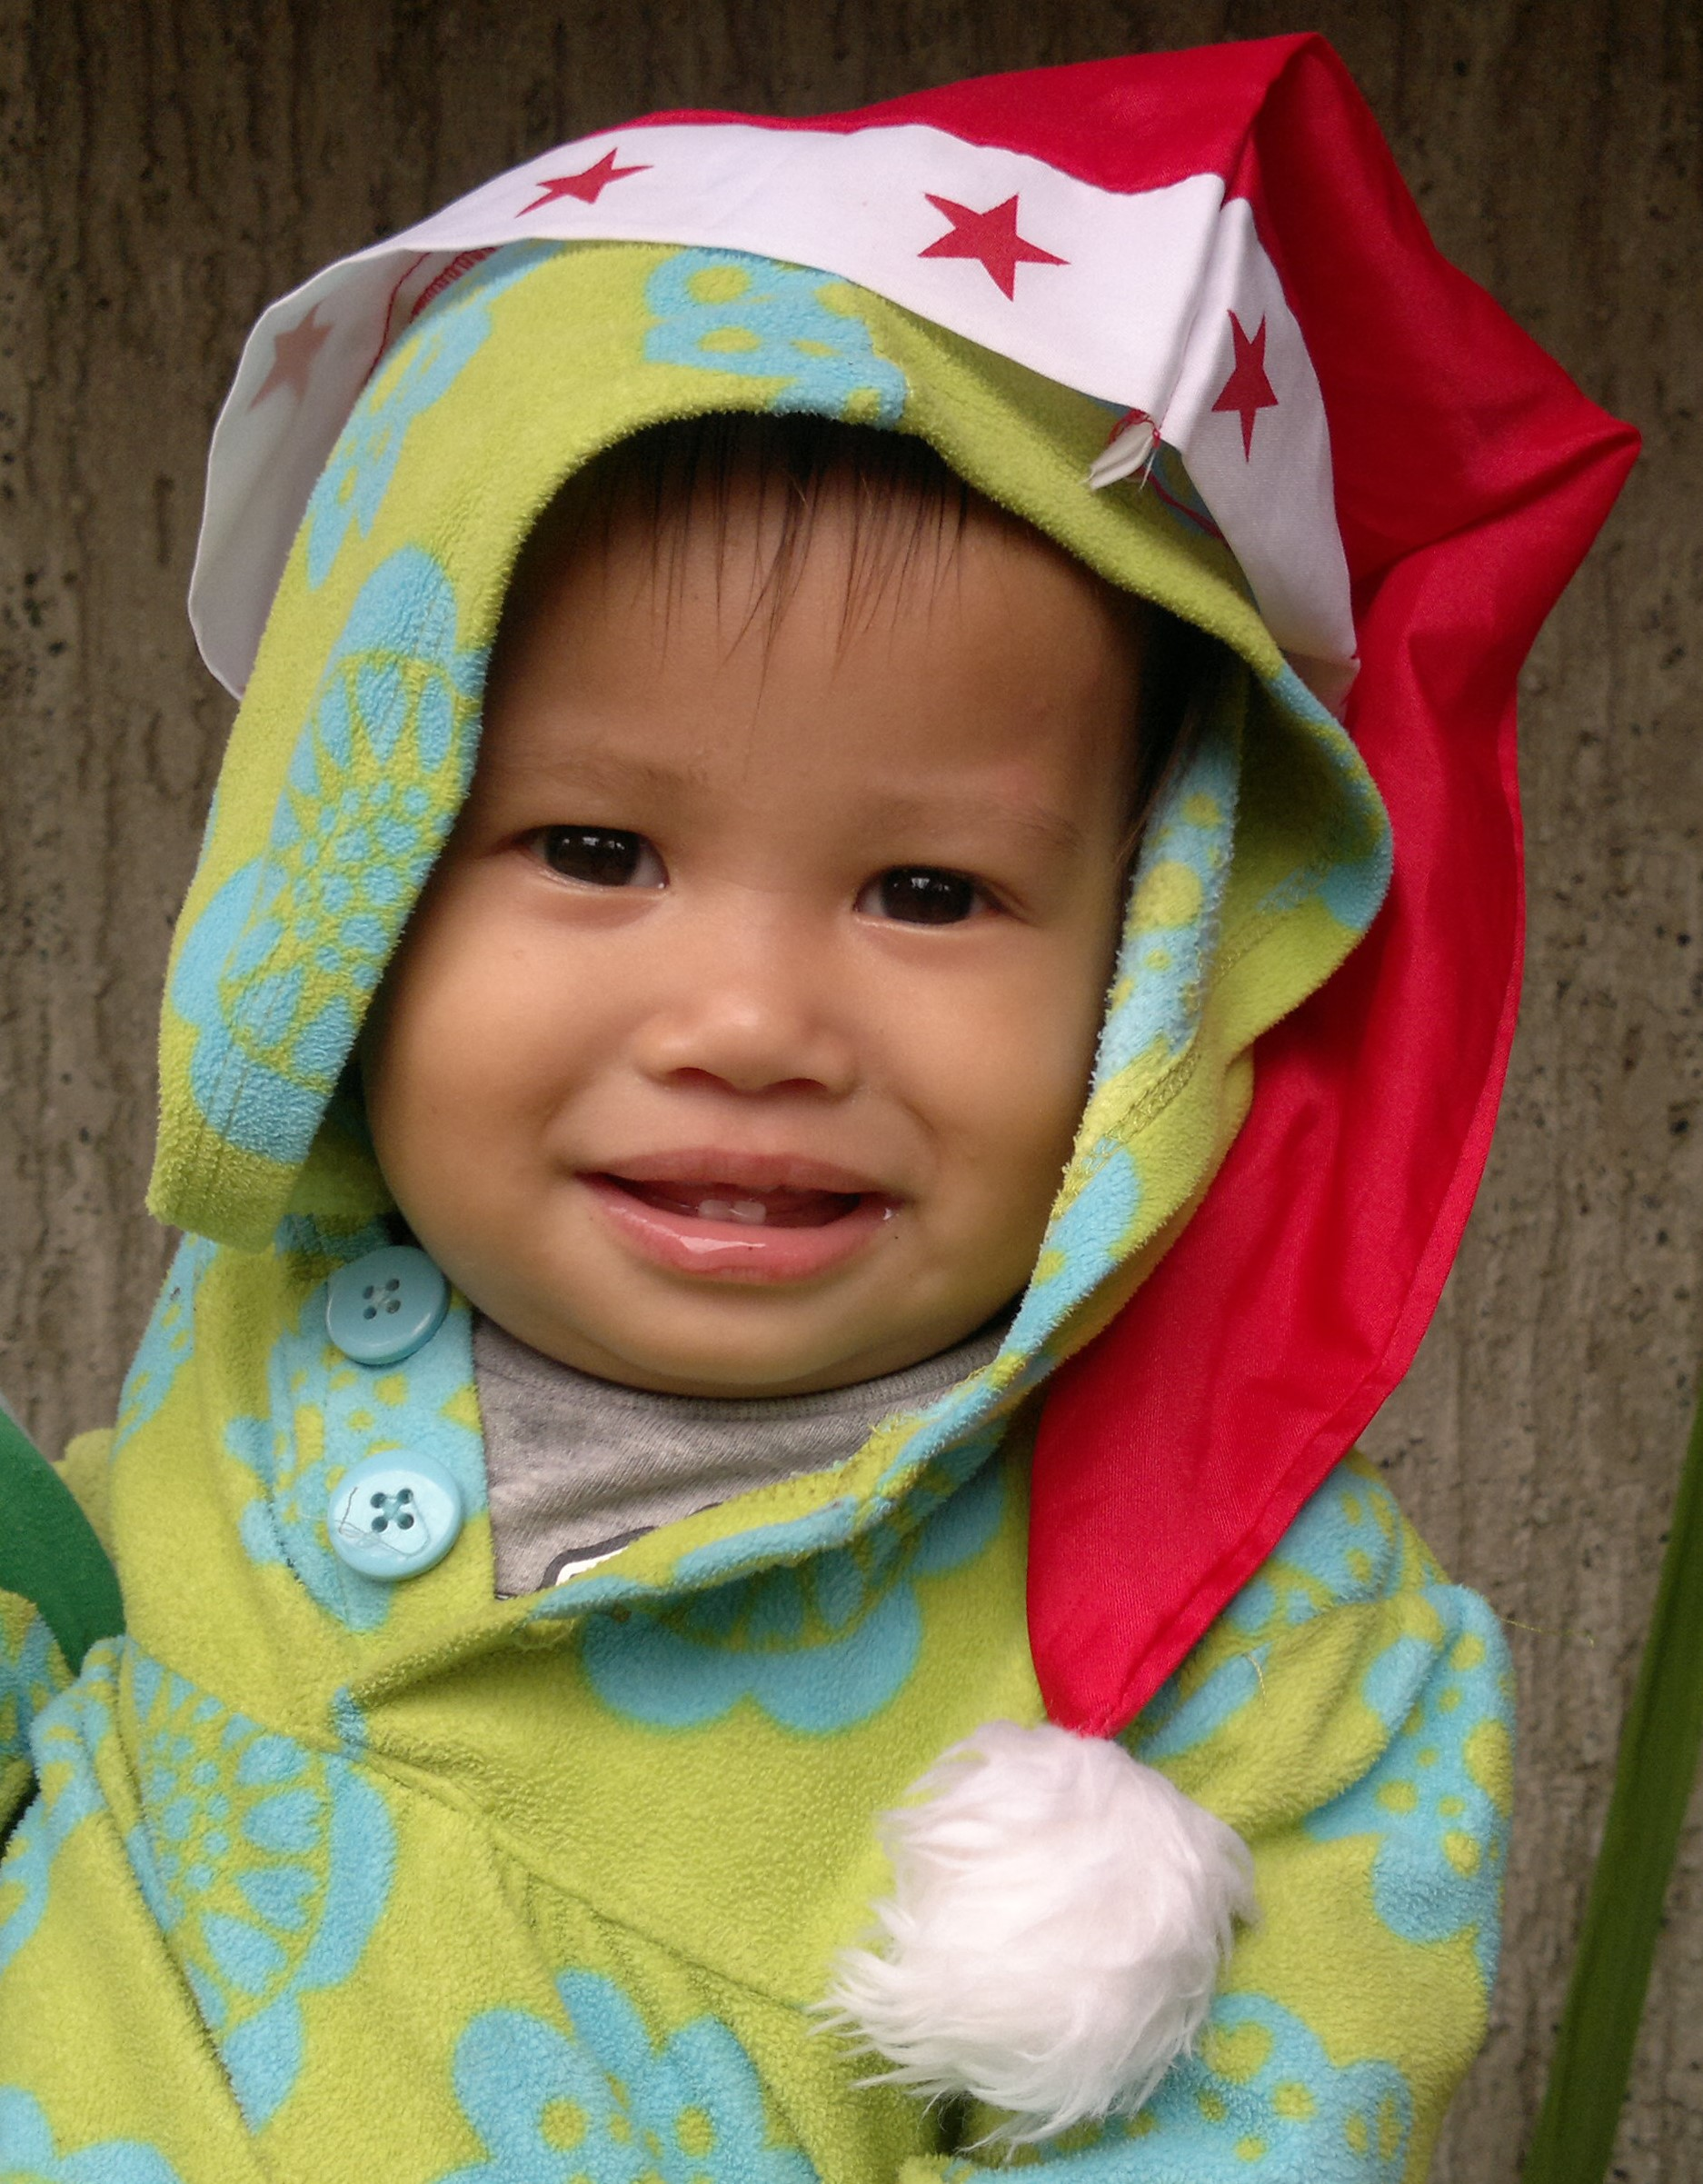 A Pag-asa Kid in Yuletide Outfit